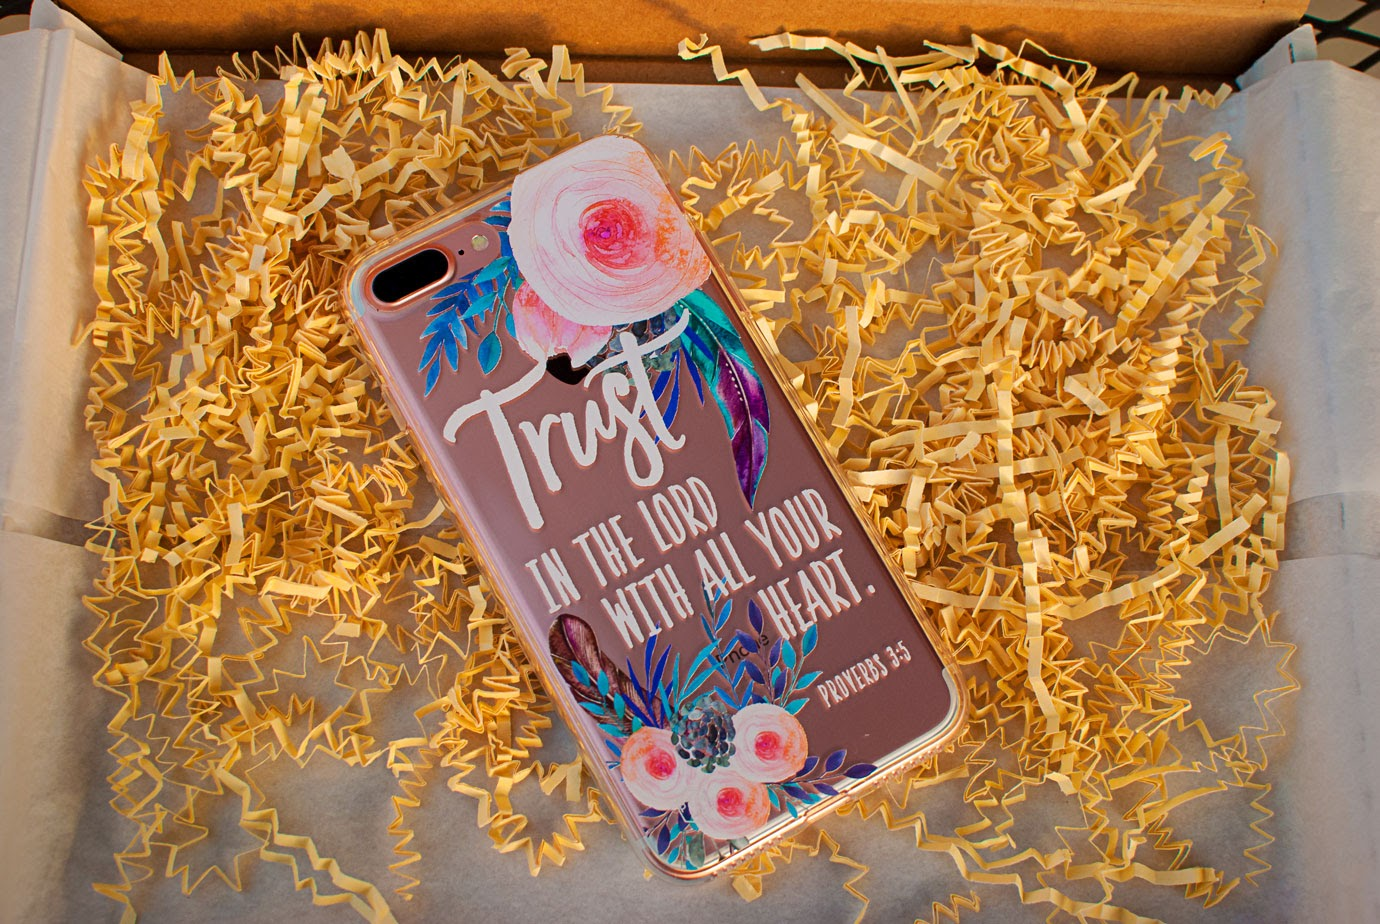 Prone To Wander Phone Case With Floral Design and Bible Verse